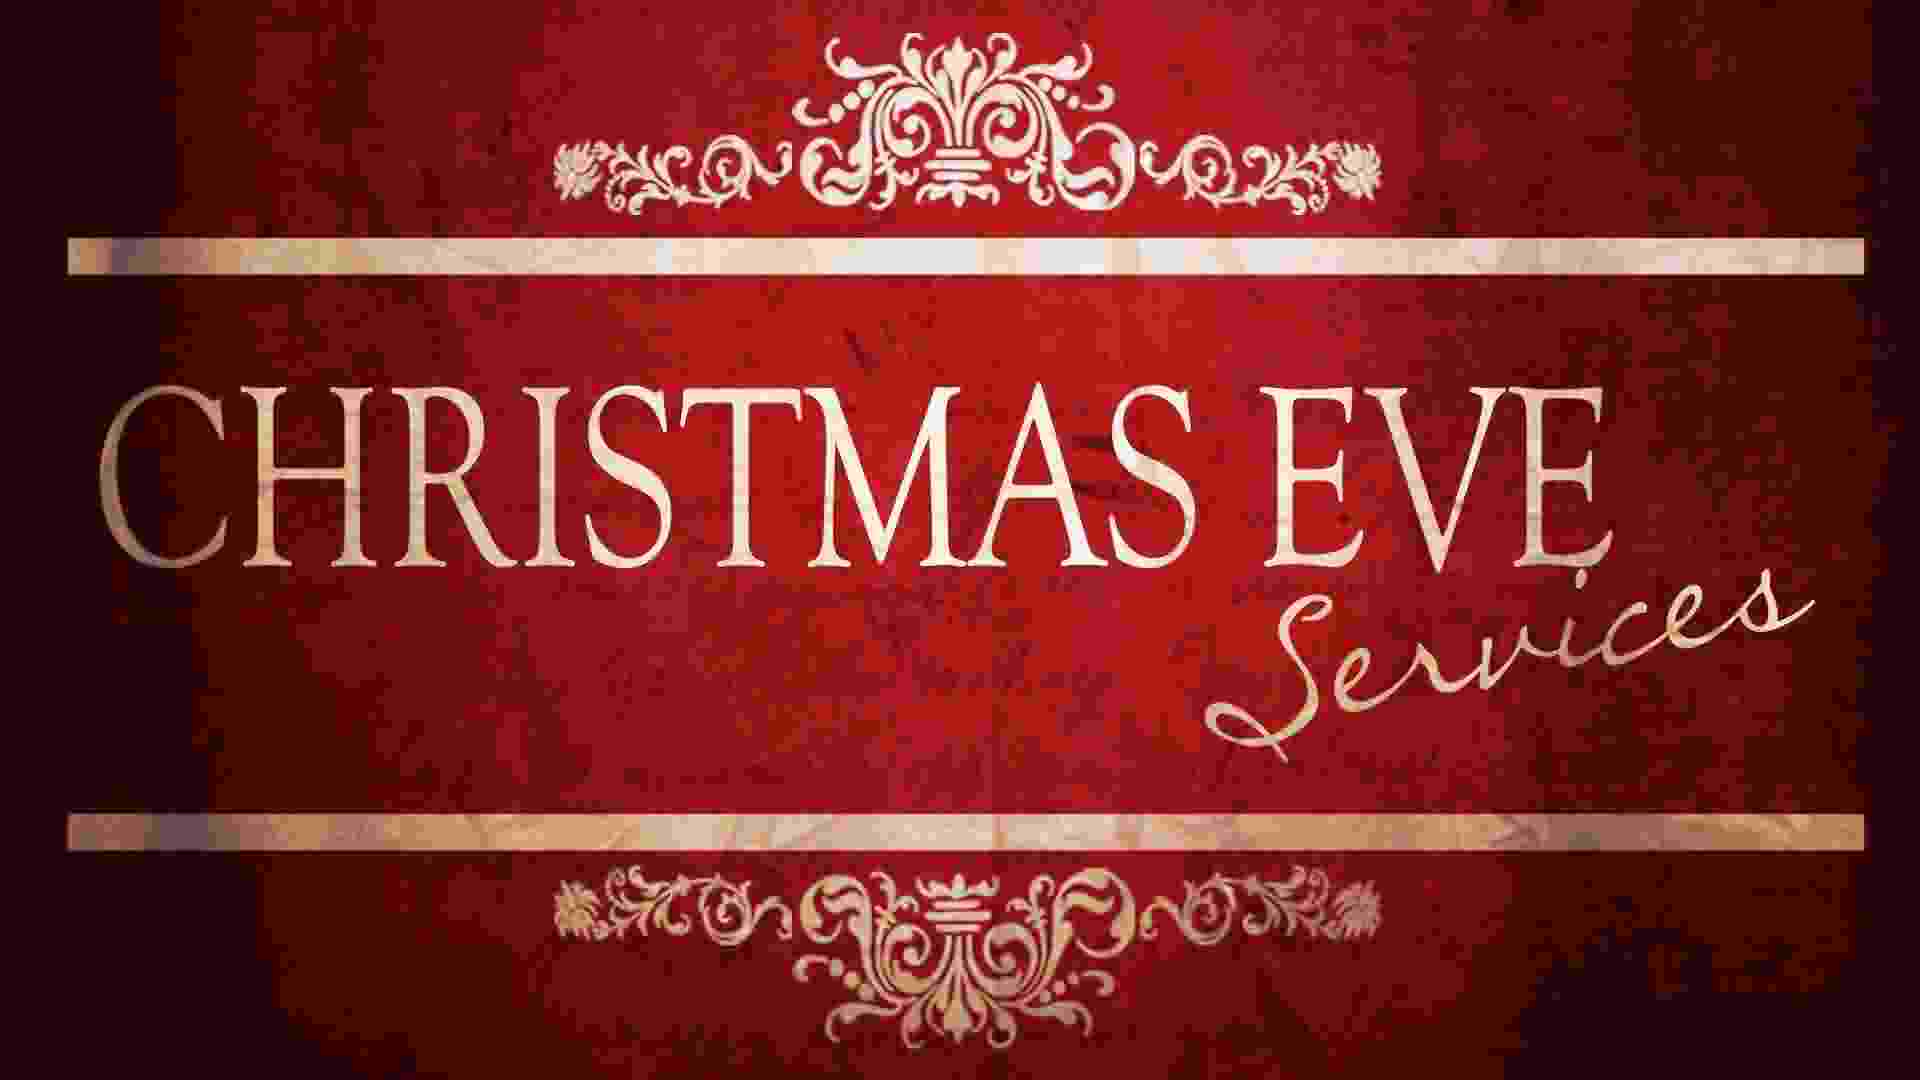 When Is Christmas Eve - Segerios.com